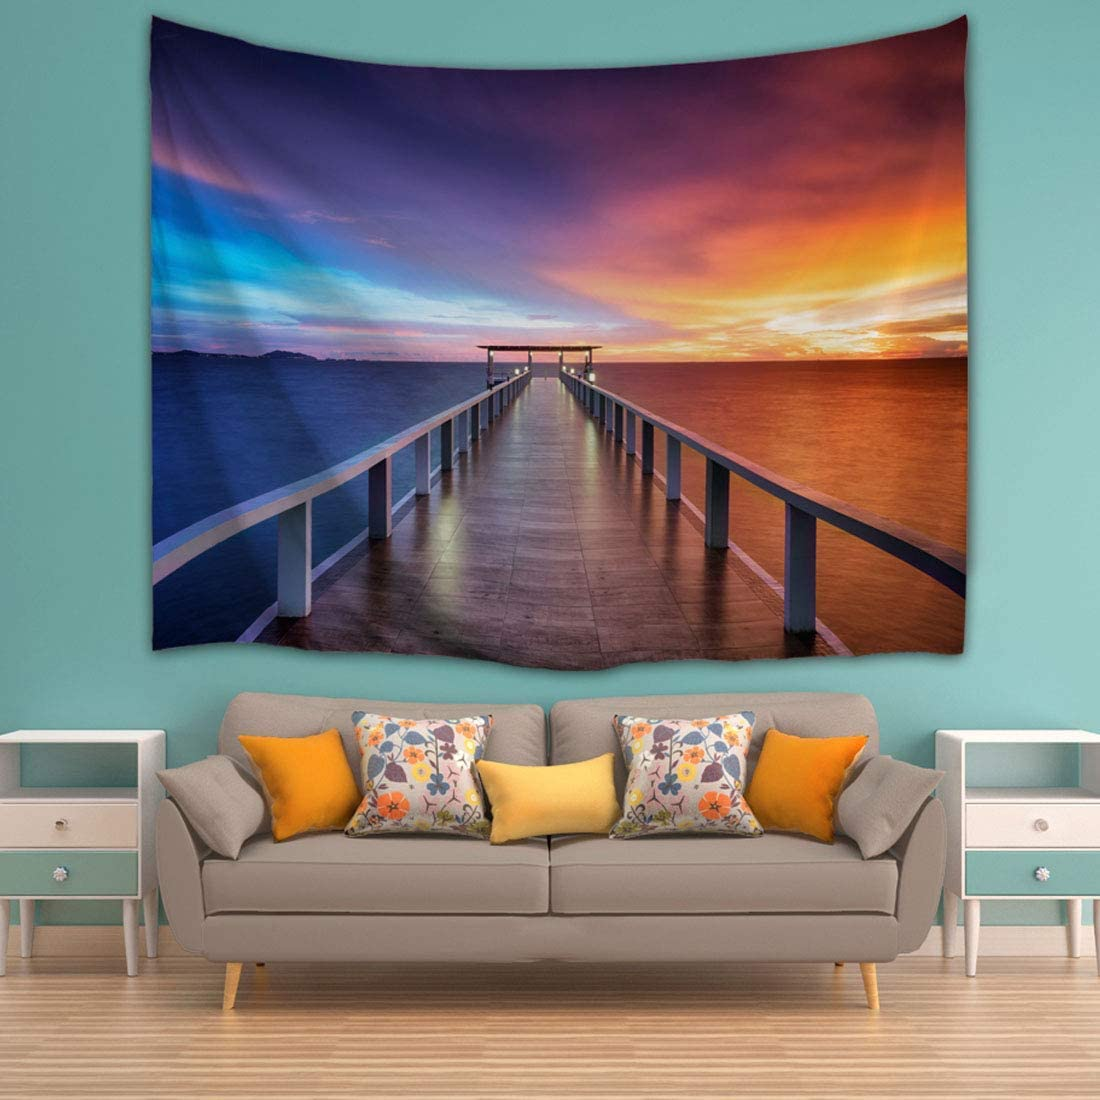 Landscape Tapestry King Size, Seaside Wooden Bridge on Blue Ocean Sea Tapestry Art Wall Hanging for Living Room Bedroom Dorm, 71 x 90